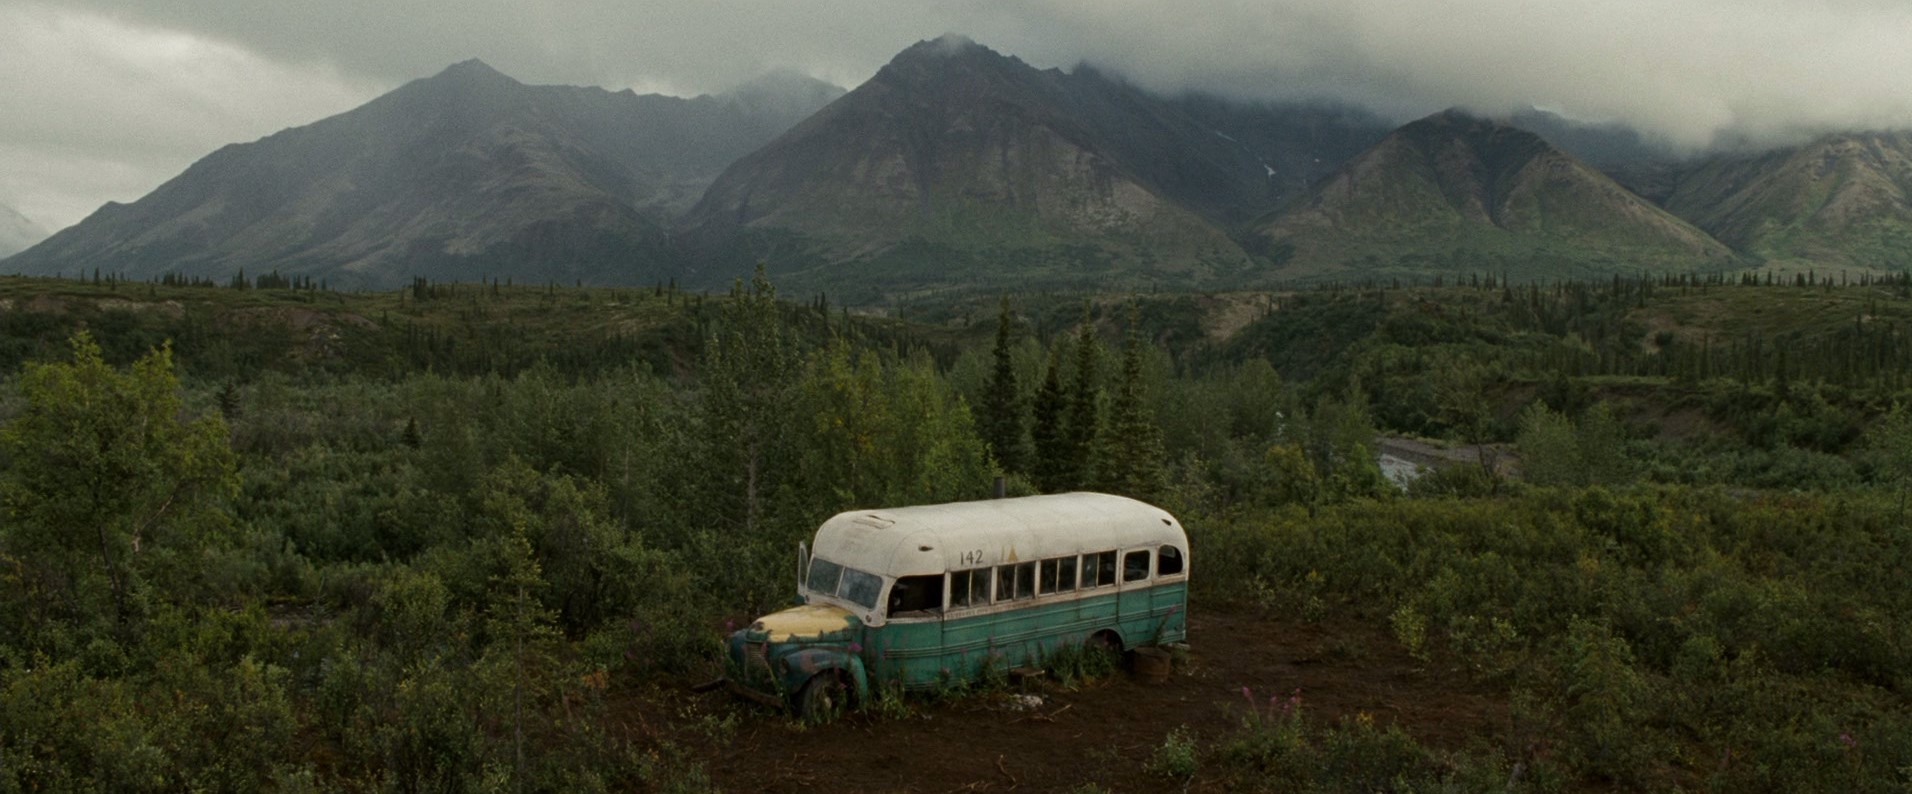 Into The Wild Quotes Into The Wild Quotes Christopher Mccandless More Information